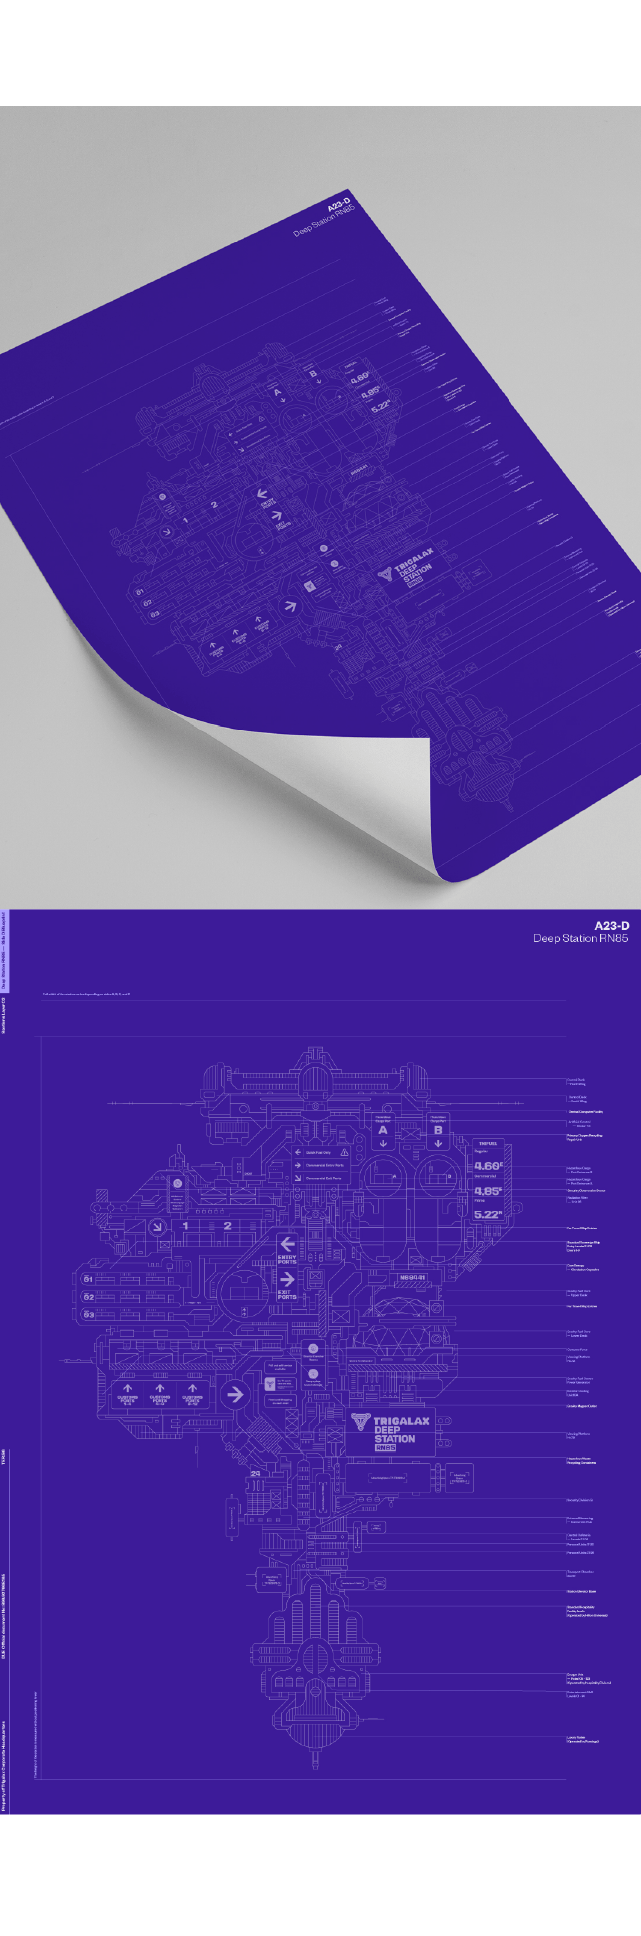 22_Trigalax-Space-Branding-Station-Blueprint-M